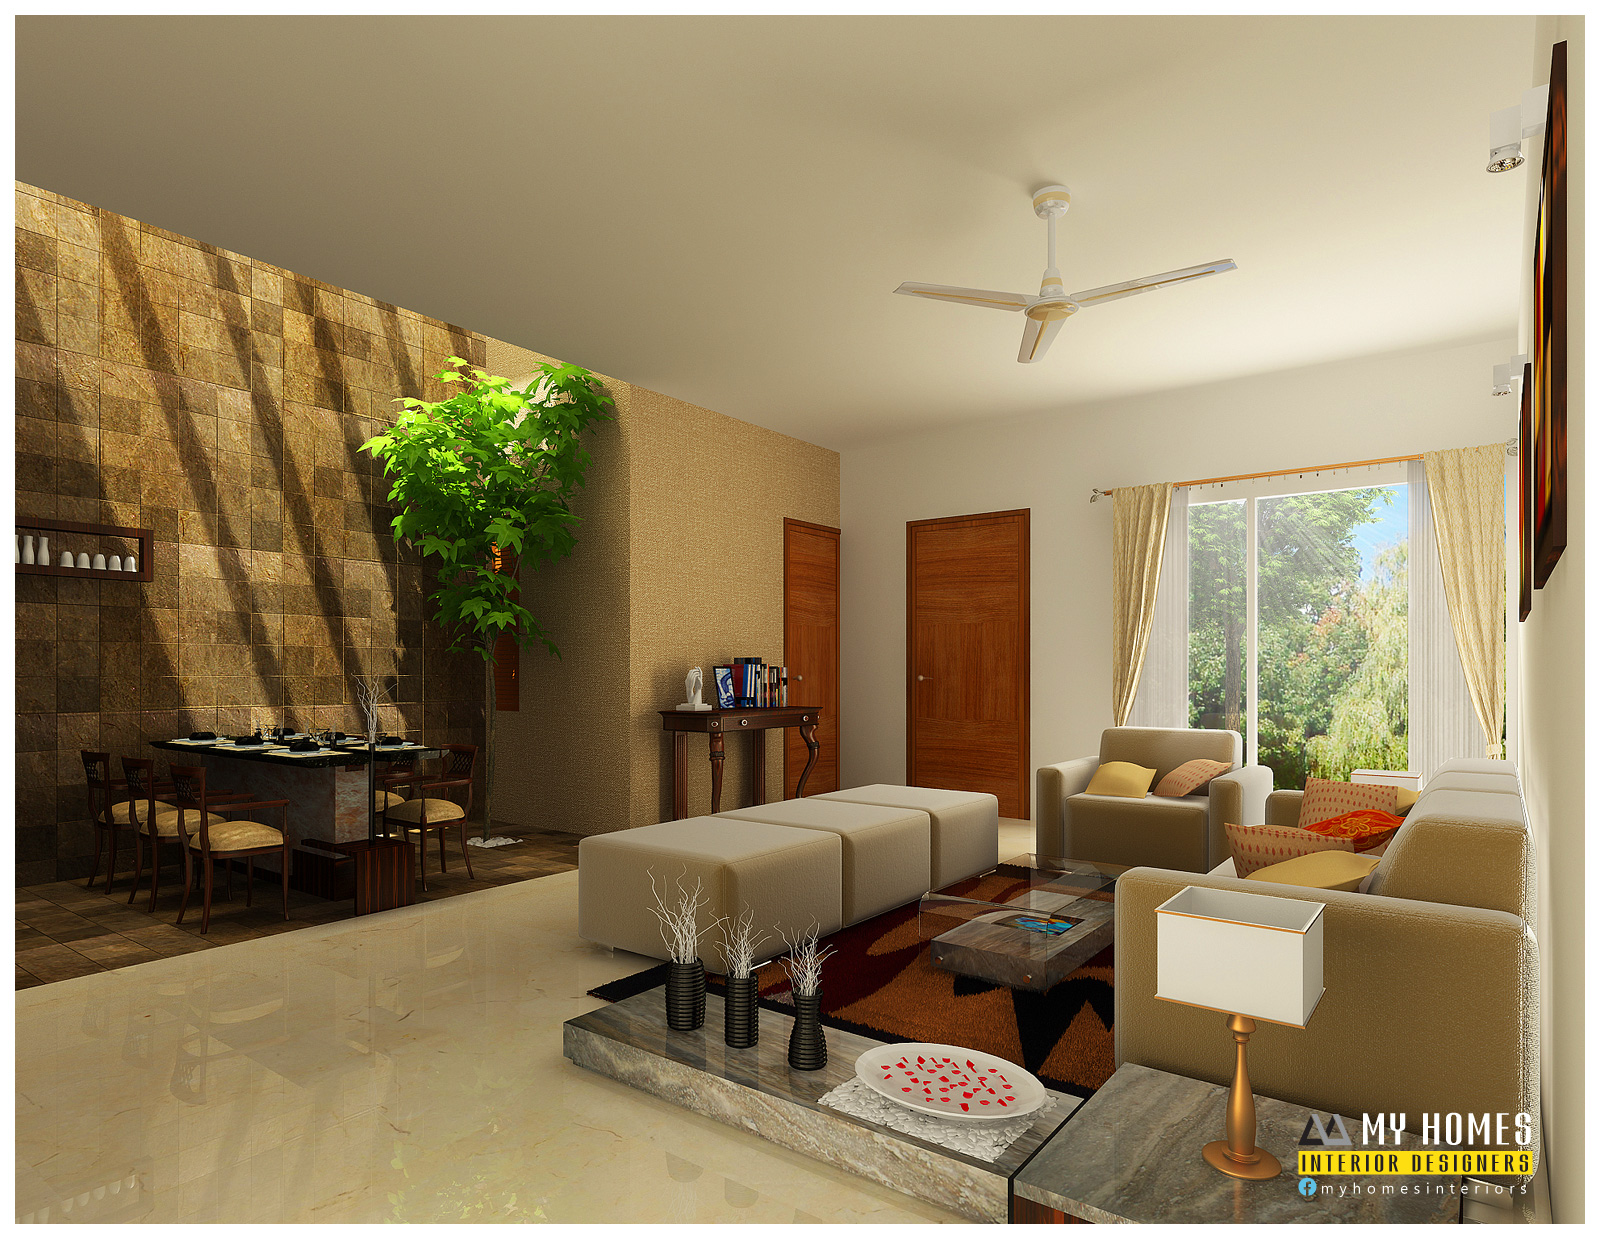 Kerala interior design ideas from designing company thrissur for Good home design ideas